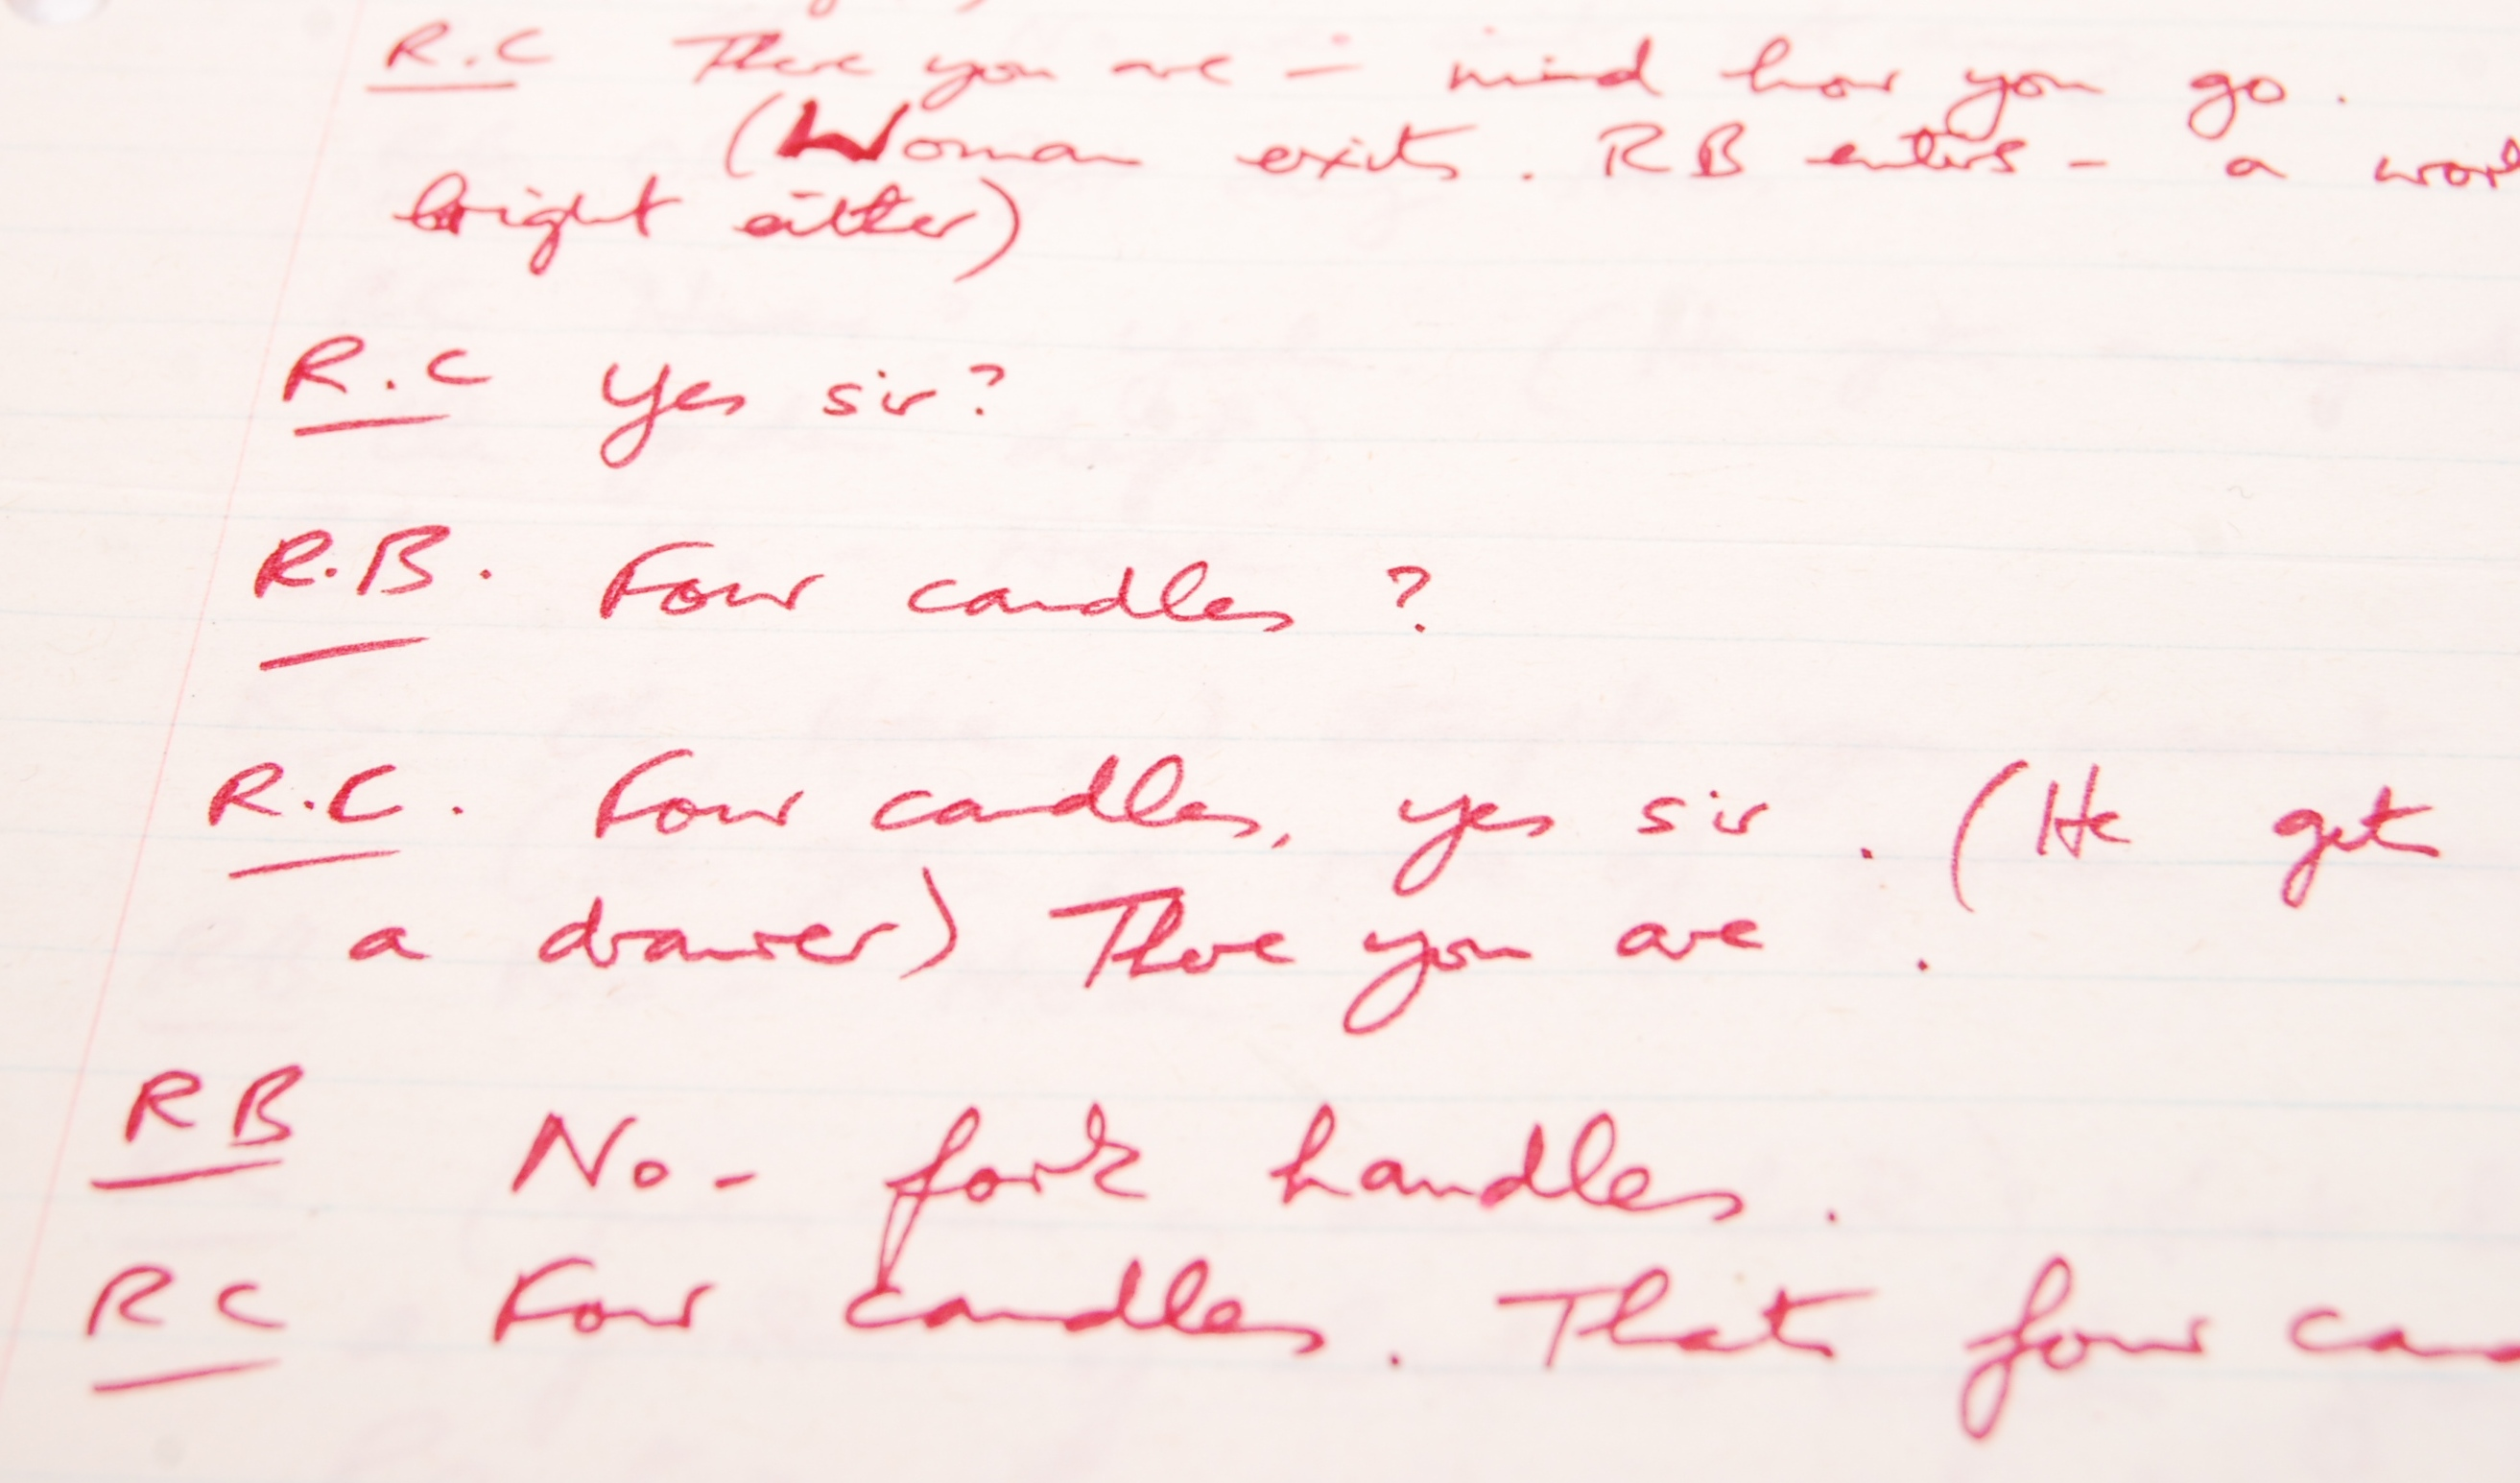 RONNIE BARKER'S HANDWRITTEN TWO RONNIES ' ANNIE FINKHOUSE ' FORK HANDLES SCRIPT - Image 2 of 7